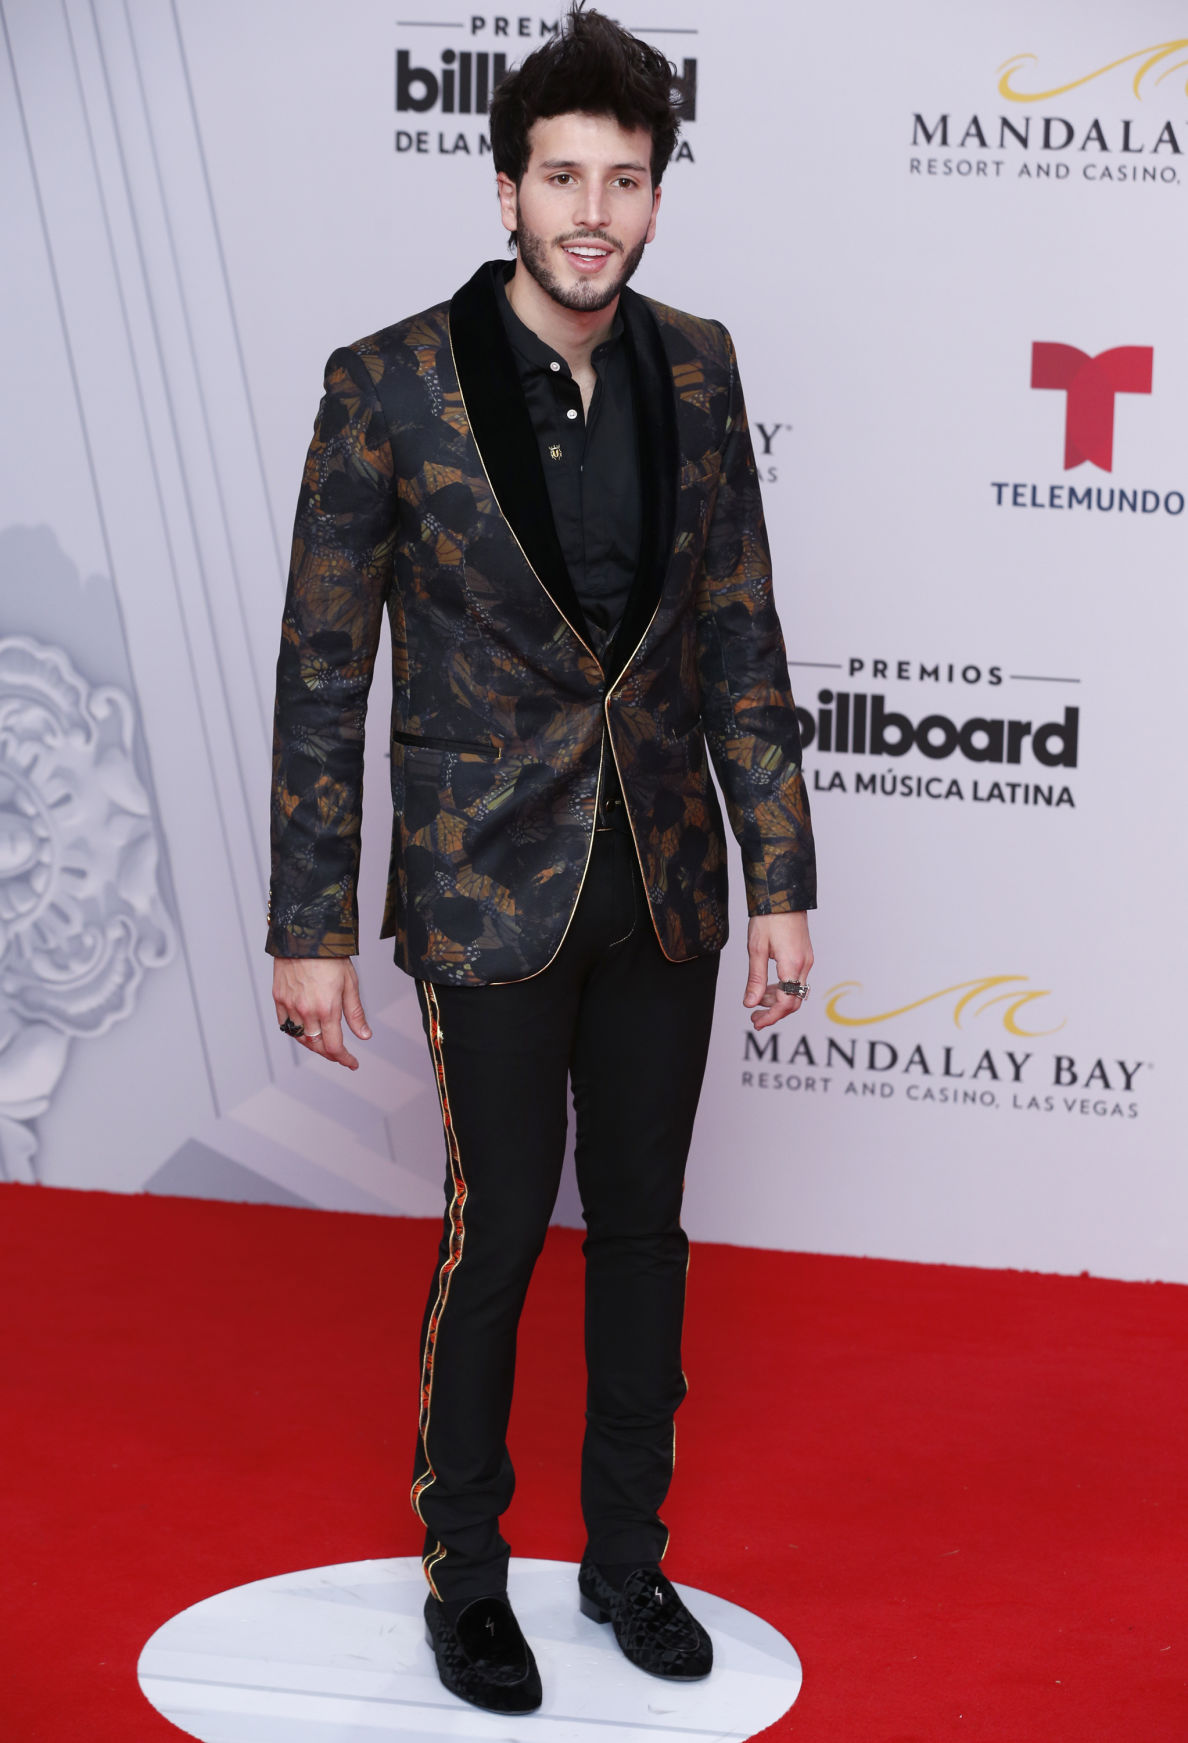 Check Out Some Of The Best Fashion At Billboard Latin Music Awards Journalstar Com